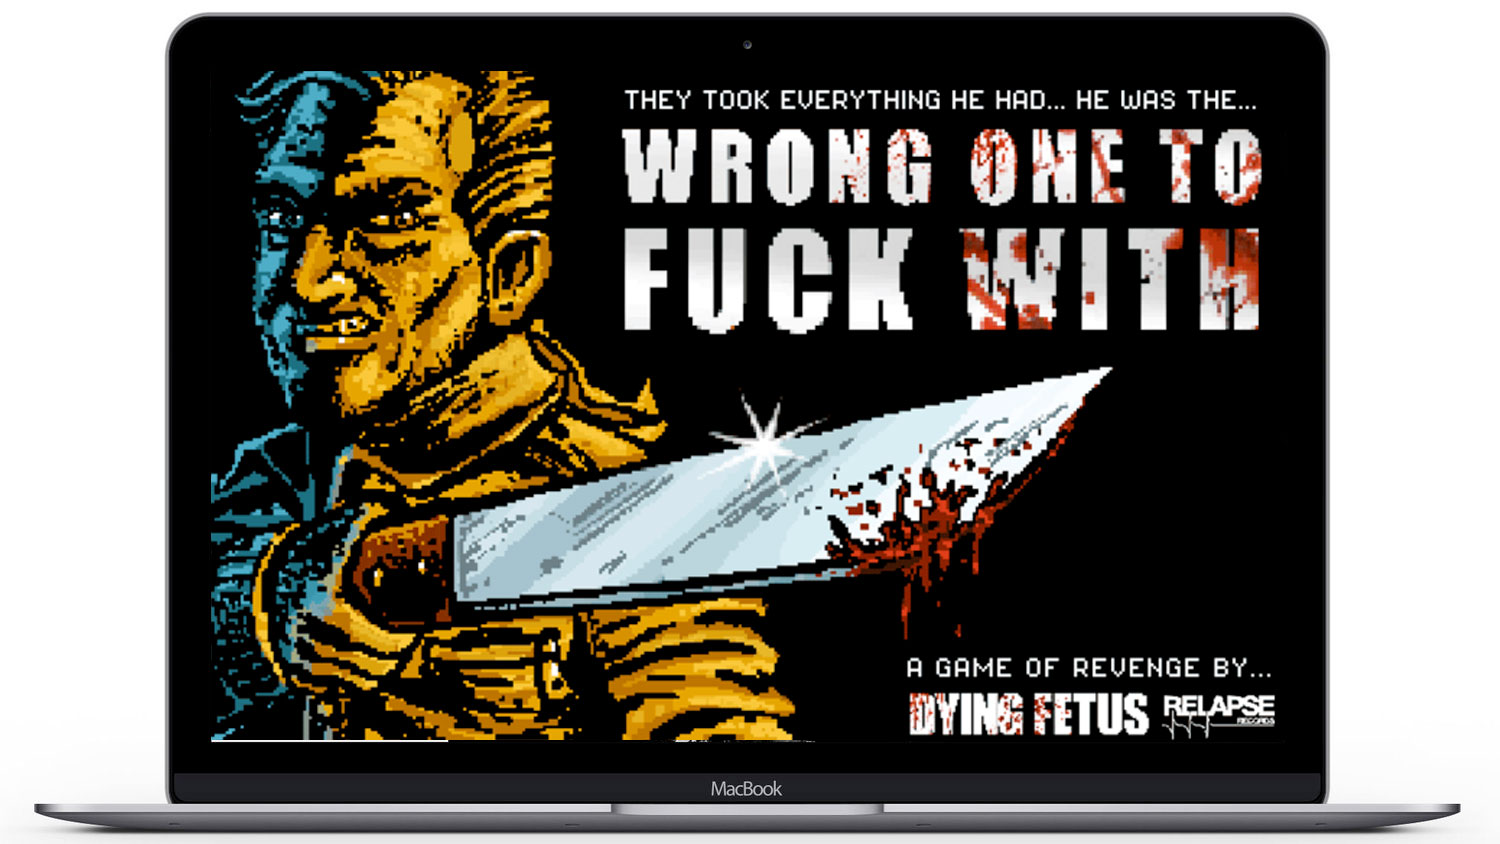 dying-fetus-game-on-computer.jpg